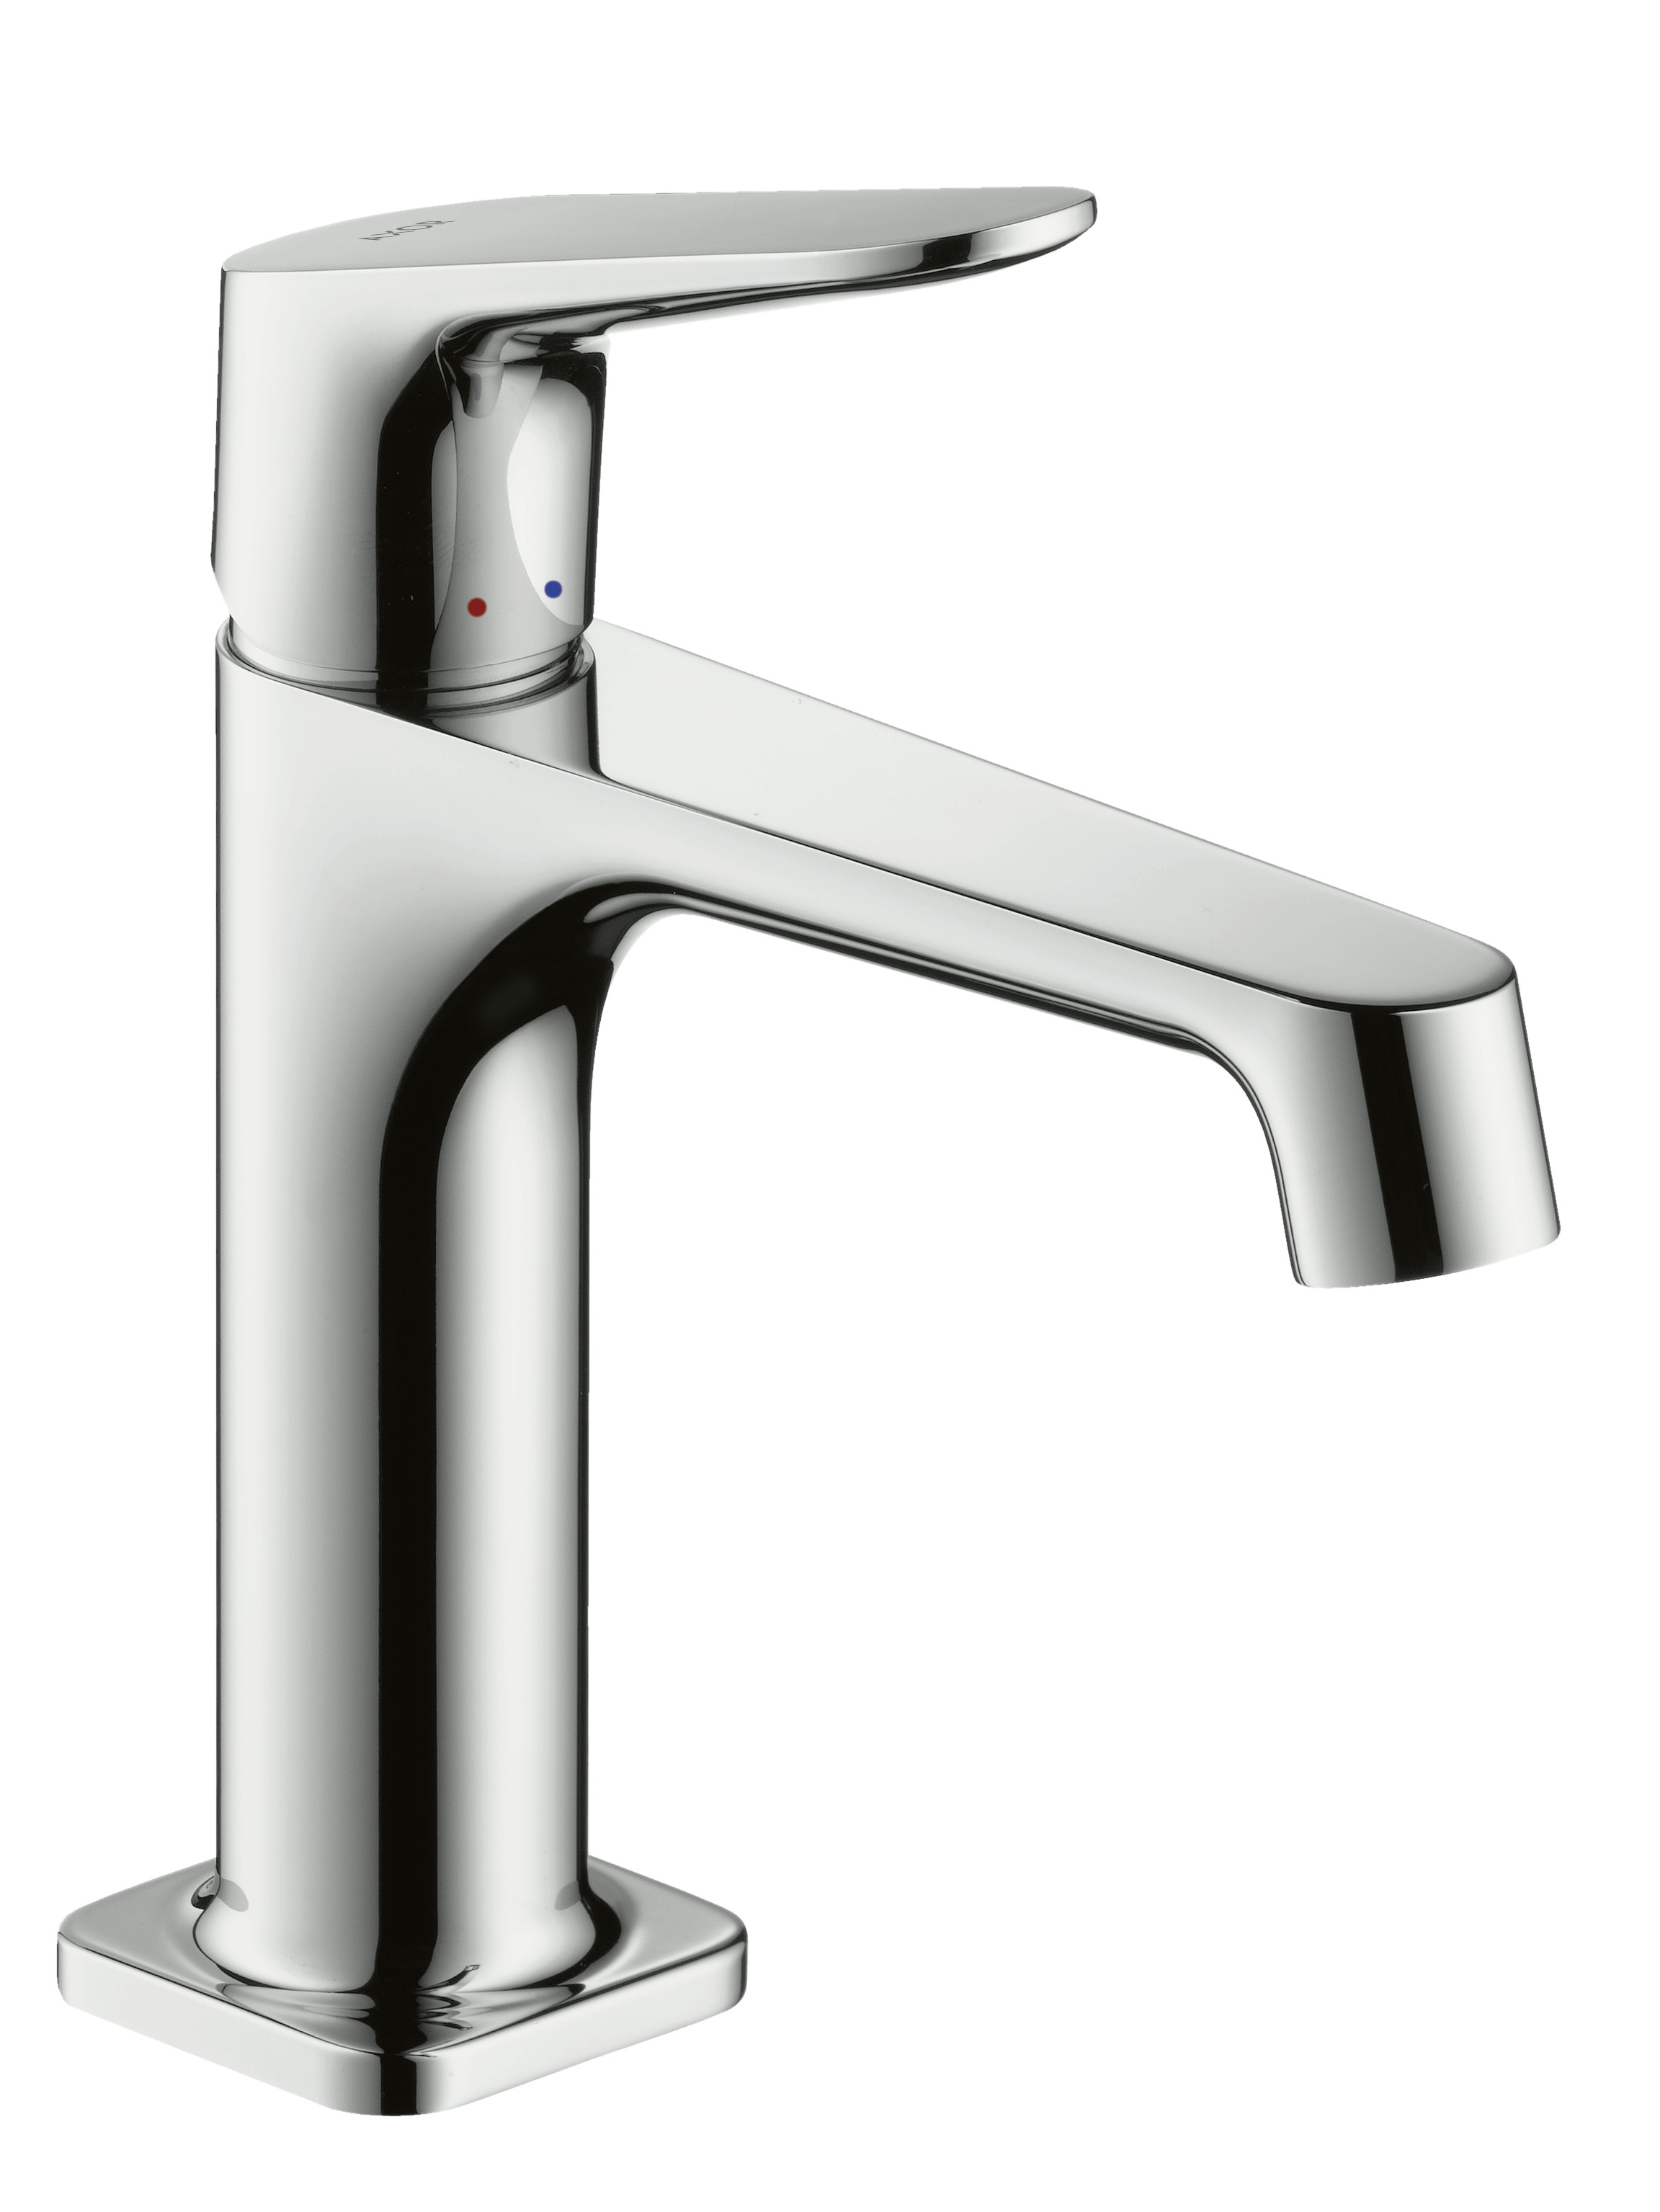 single mount styles picture background tub for mounted grohe allure faucets faucet hansgrohe and wall concept trends bathroom fascinating amazing sinks ideas